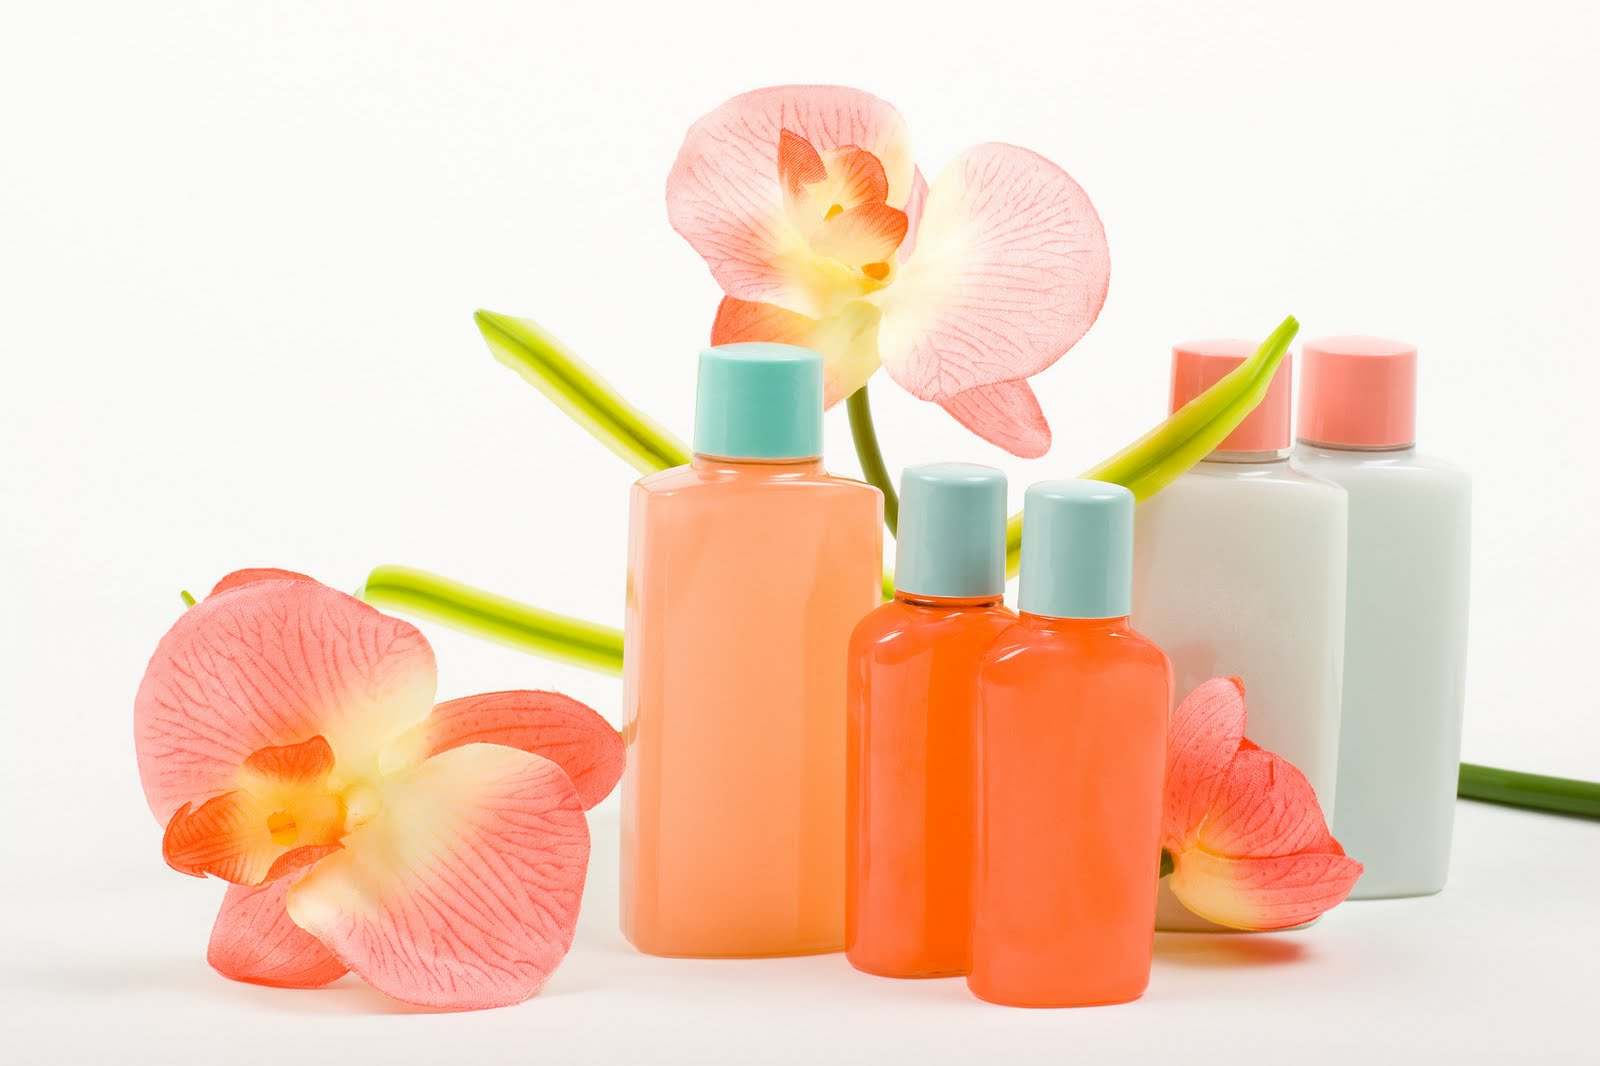 Personal care and cosmetics